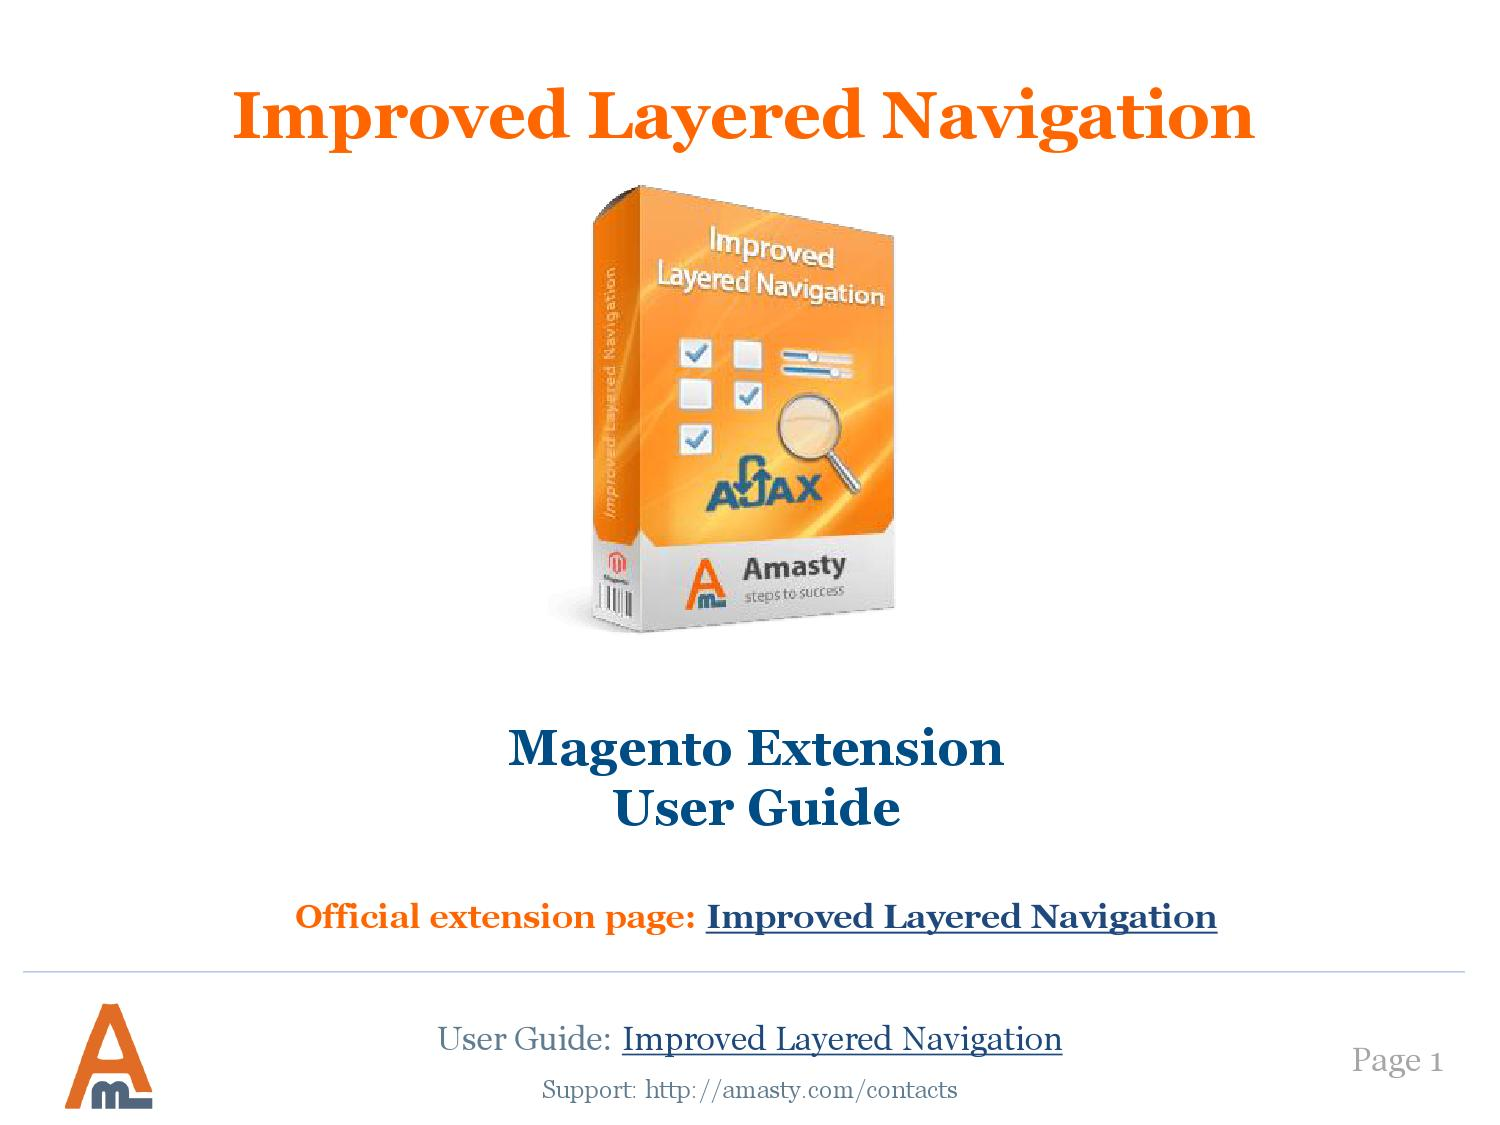 Improved layered navigation user guide by Esense - issuu